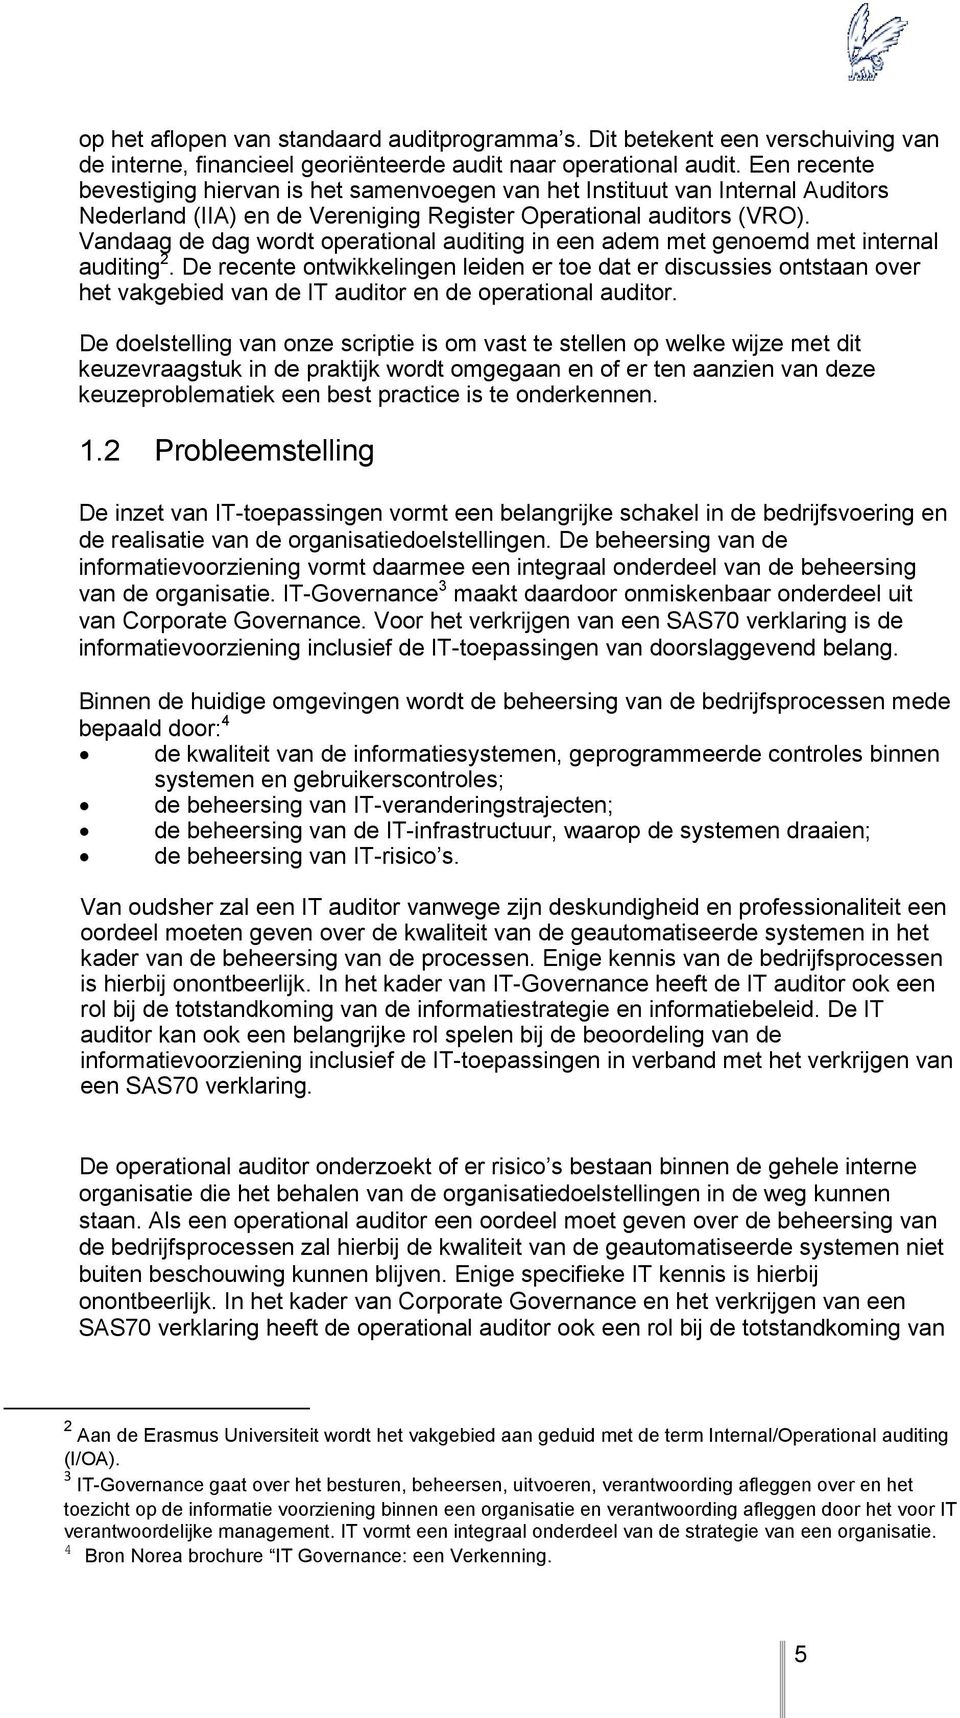 Vandaag de dag wordt operational auditing in een adem met genoemd met internal auditing 2.